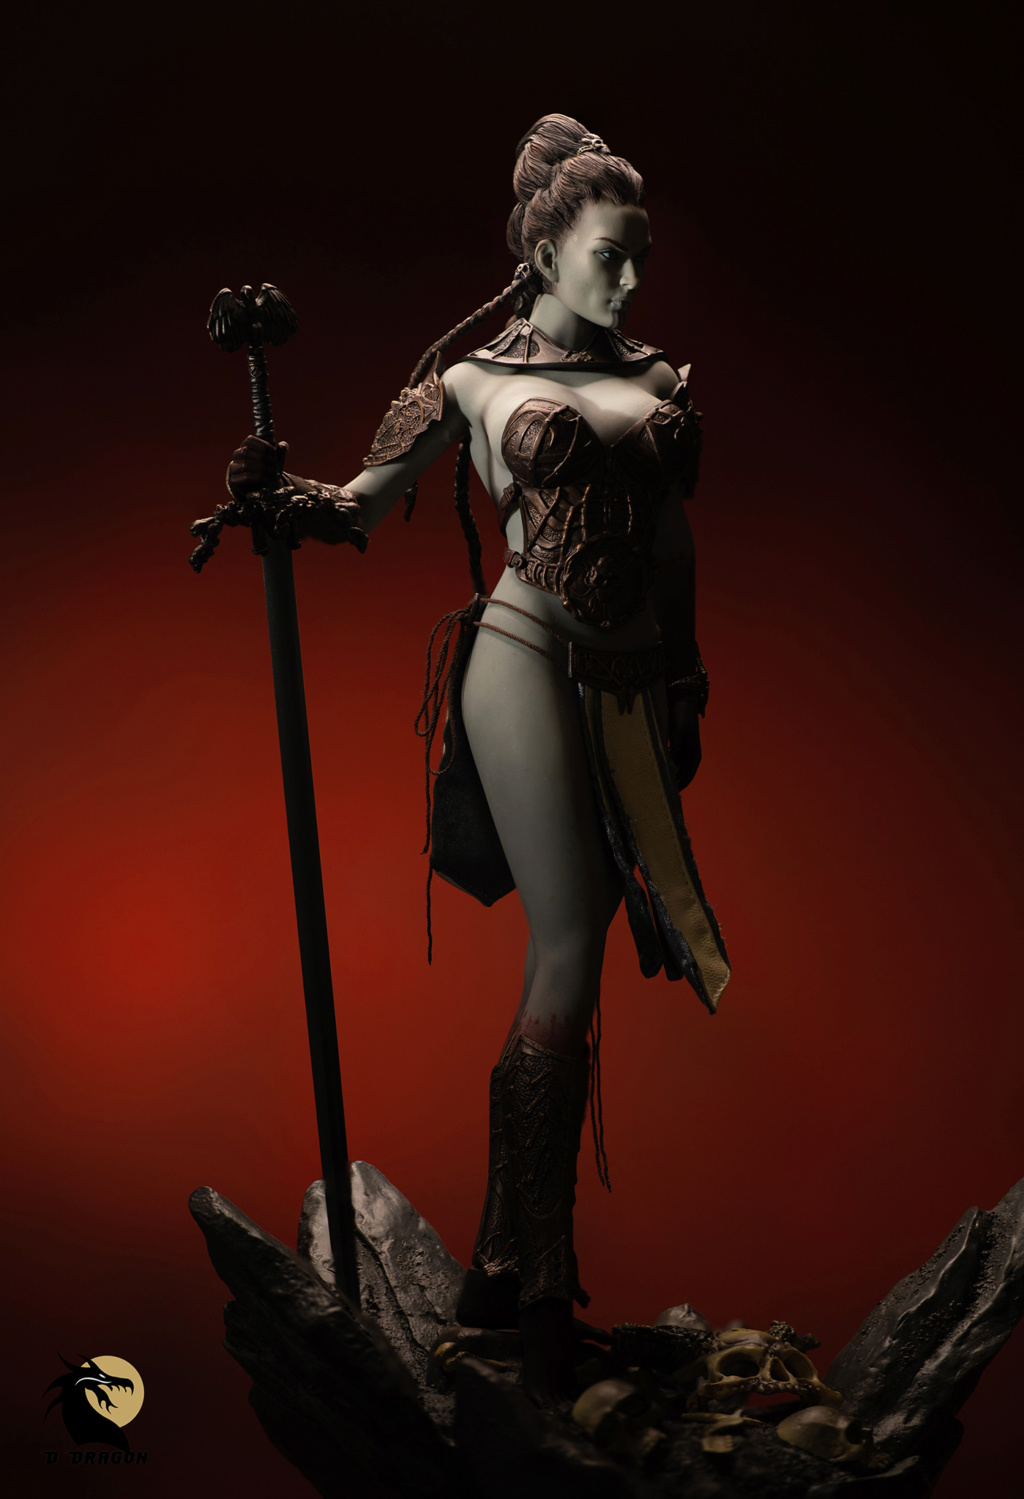 tbleague - NEW PRODUCT: TBLeague & Sideshow: 1/6 Court of the Dead - Valkyrie Cole / Kier movable doll (PL2019-141) Kier_110